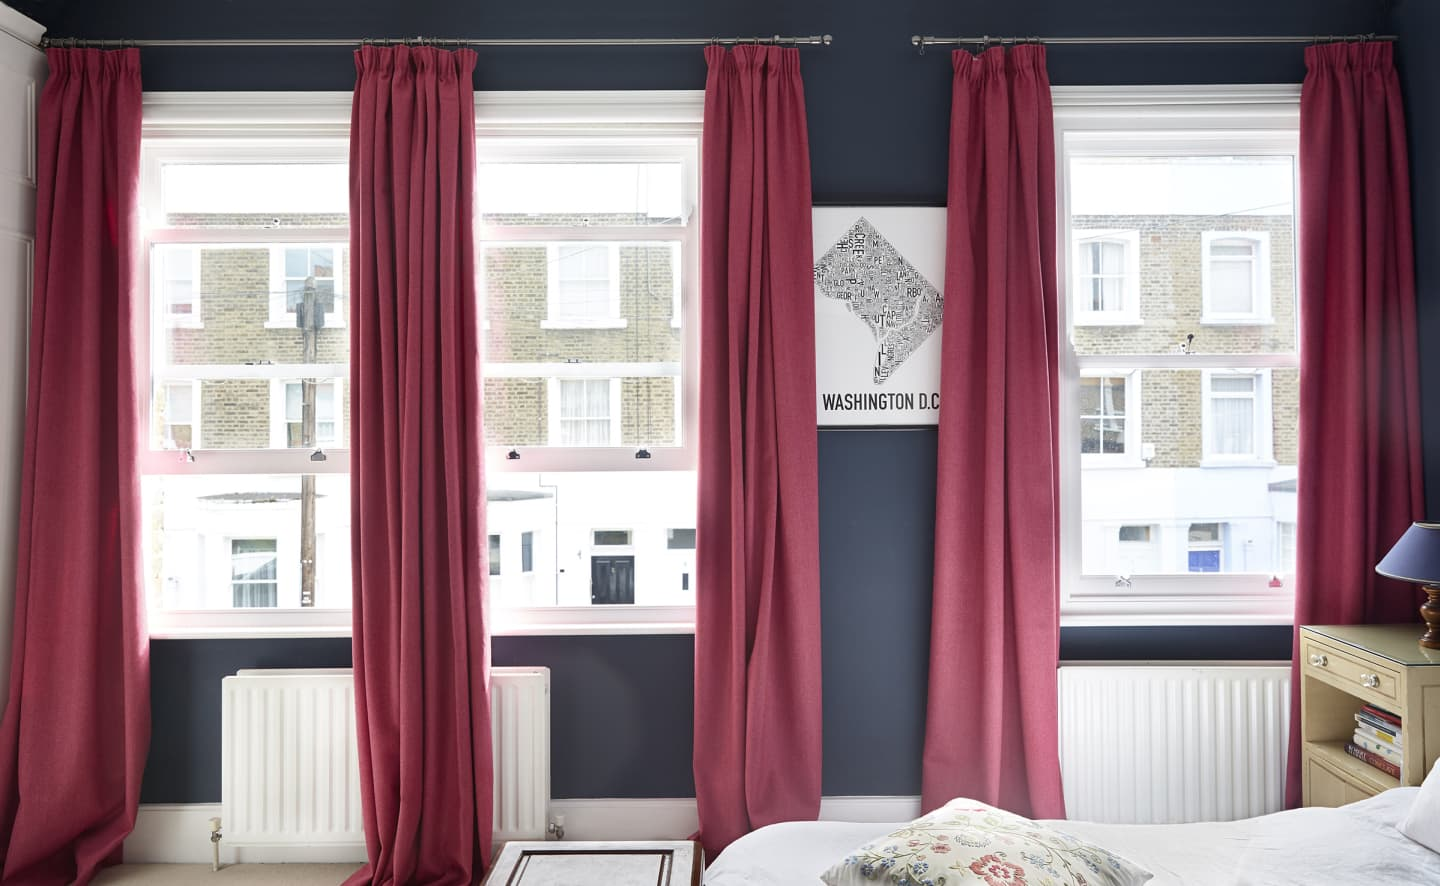 Open windows and three red/pink curtains